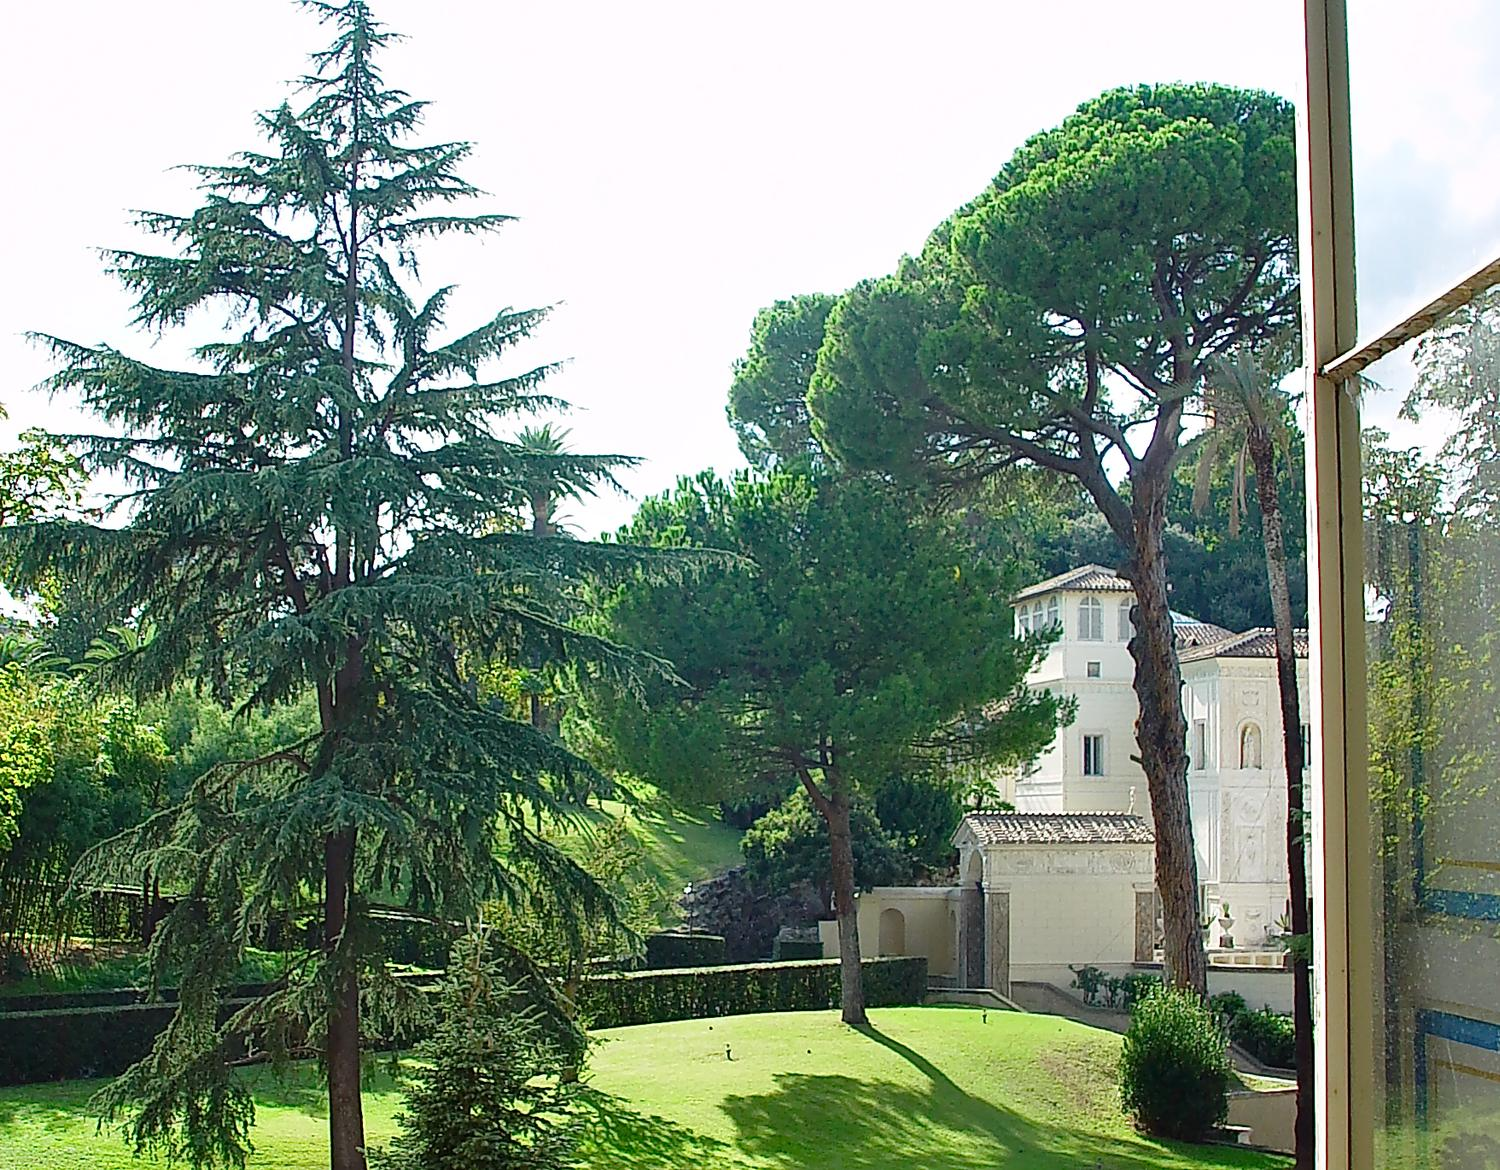 - View from a Vatican window. The stone pine tree is on the right. Note the distinctive umbrella shape. - - Italian Stone Pine Tree - Umbrella Pine - Pinus Pinea - - Tony Karp, design, art, photography, techno-impressionist, techno-impressionism, aerial photography , drone , drones , dji , mavic pro , video , 3D printing - Books -